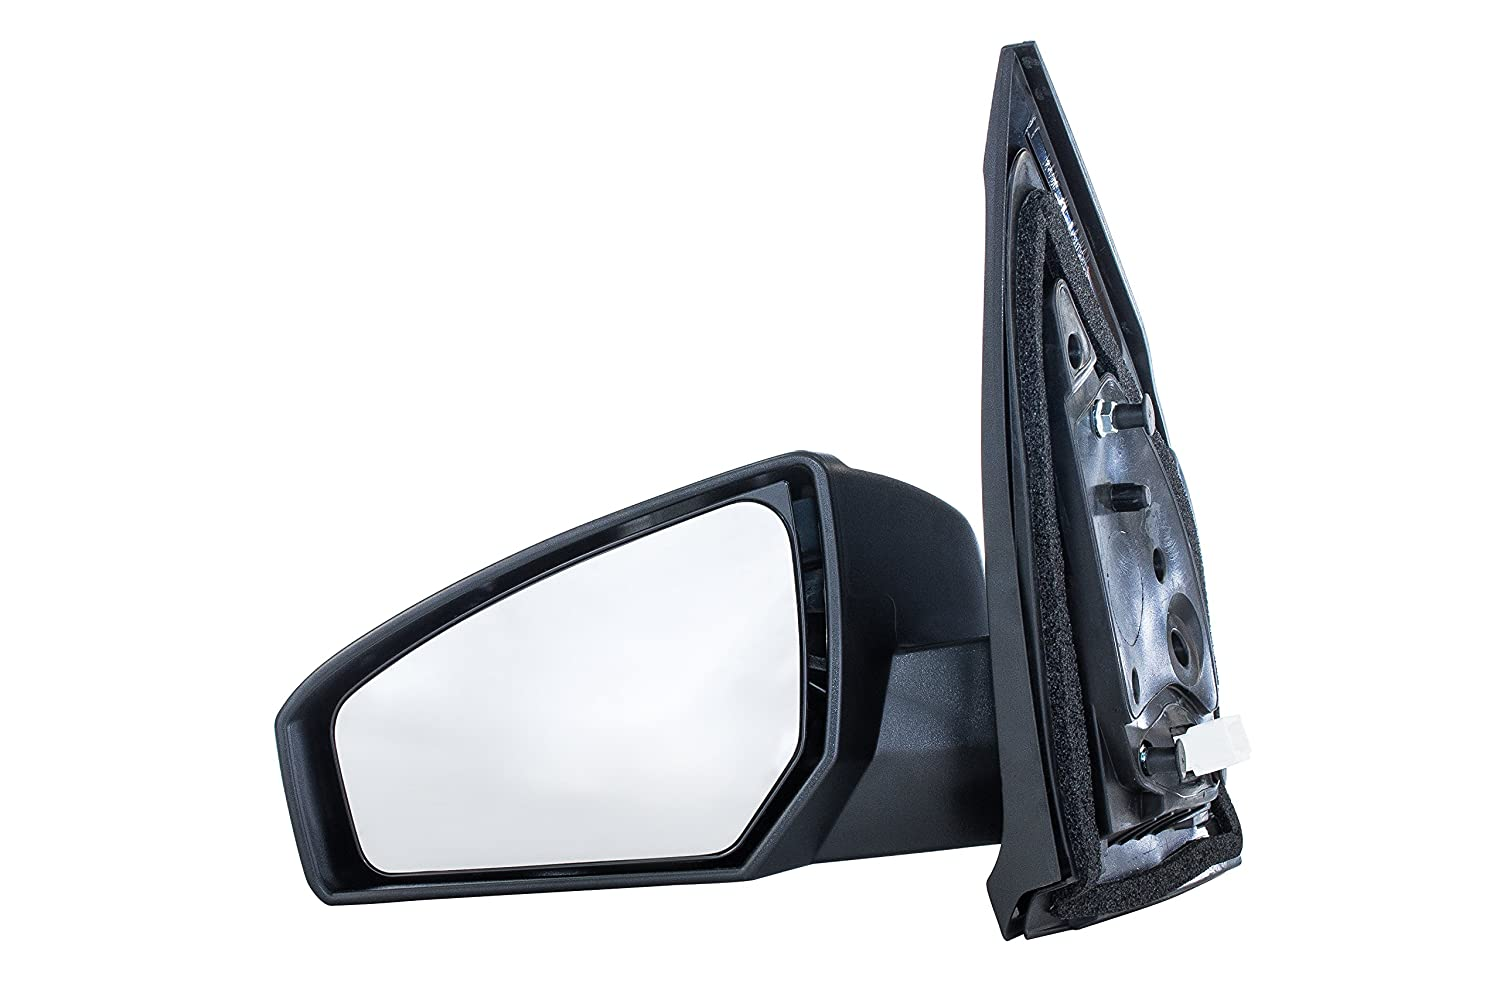 Passenger Side Mirror for Nissan Sentra (2007 2008 2009 2010 2011 2012) Power Operation Unpainted Non-Heated Folding Right Outside Rear View Replacement Door Mirror Dependable Direct